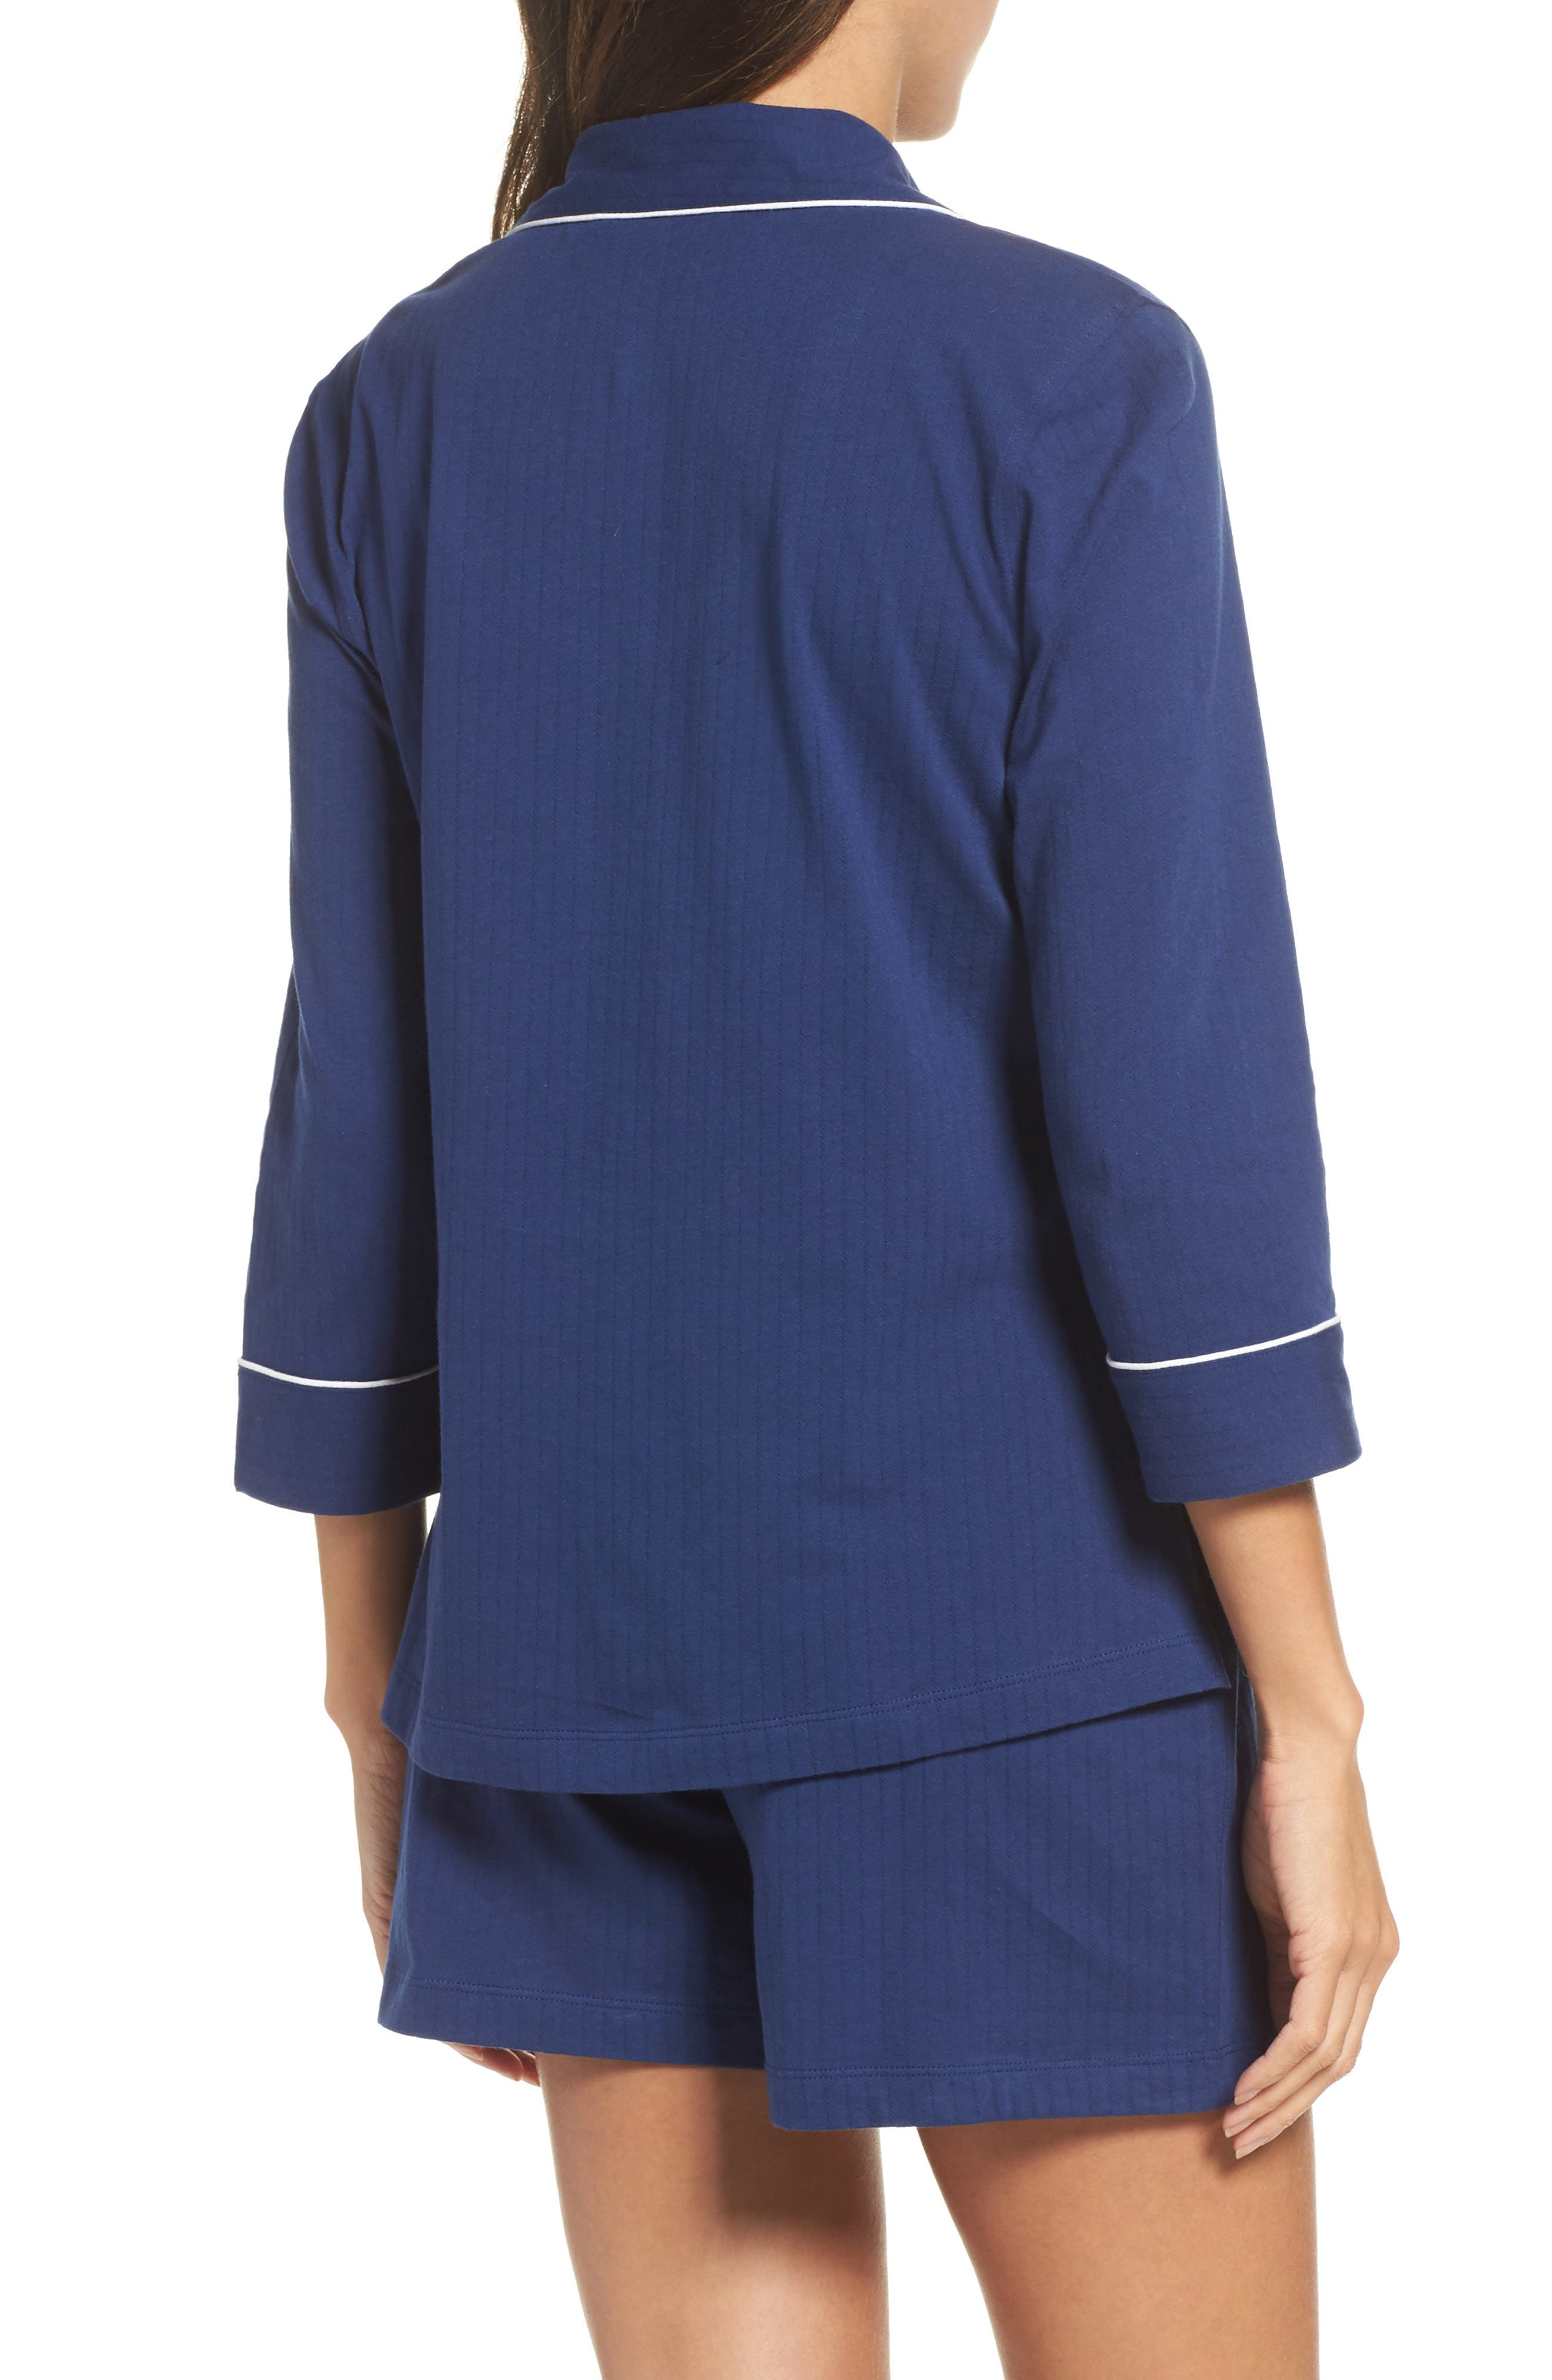 Notched Collar Pajamas,                             Alternate thumbnail 2, color,                             400